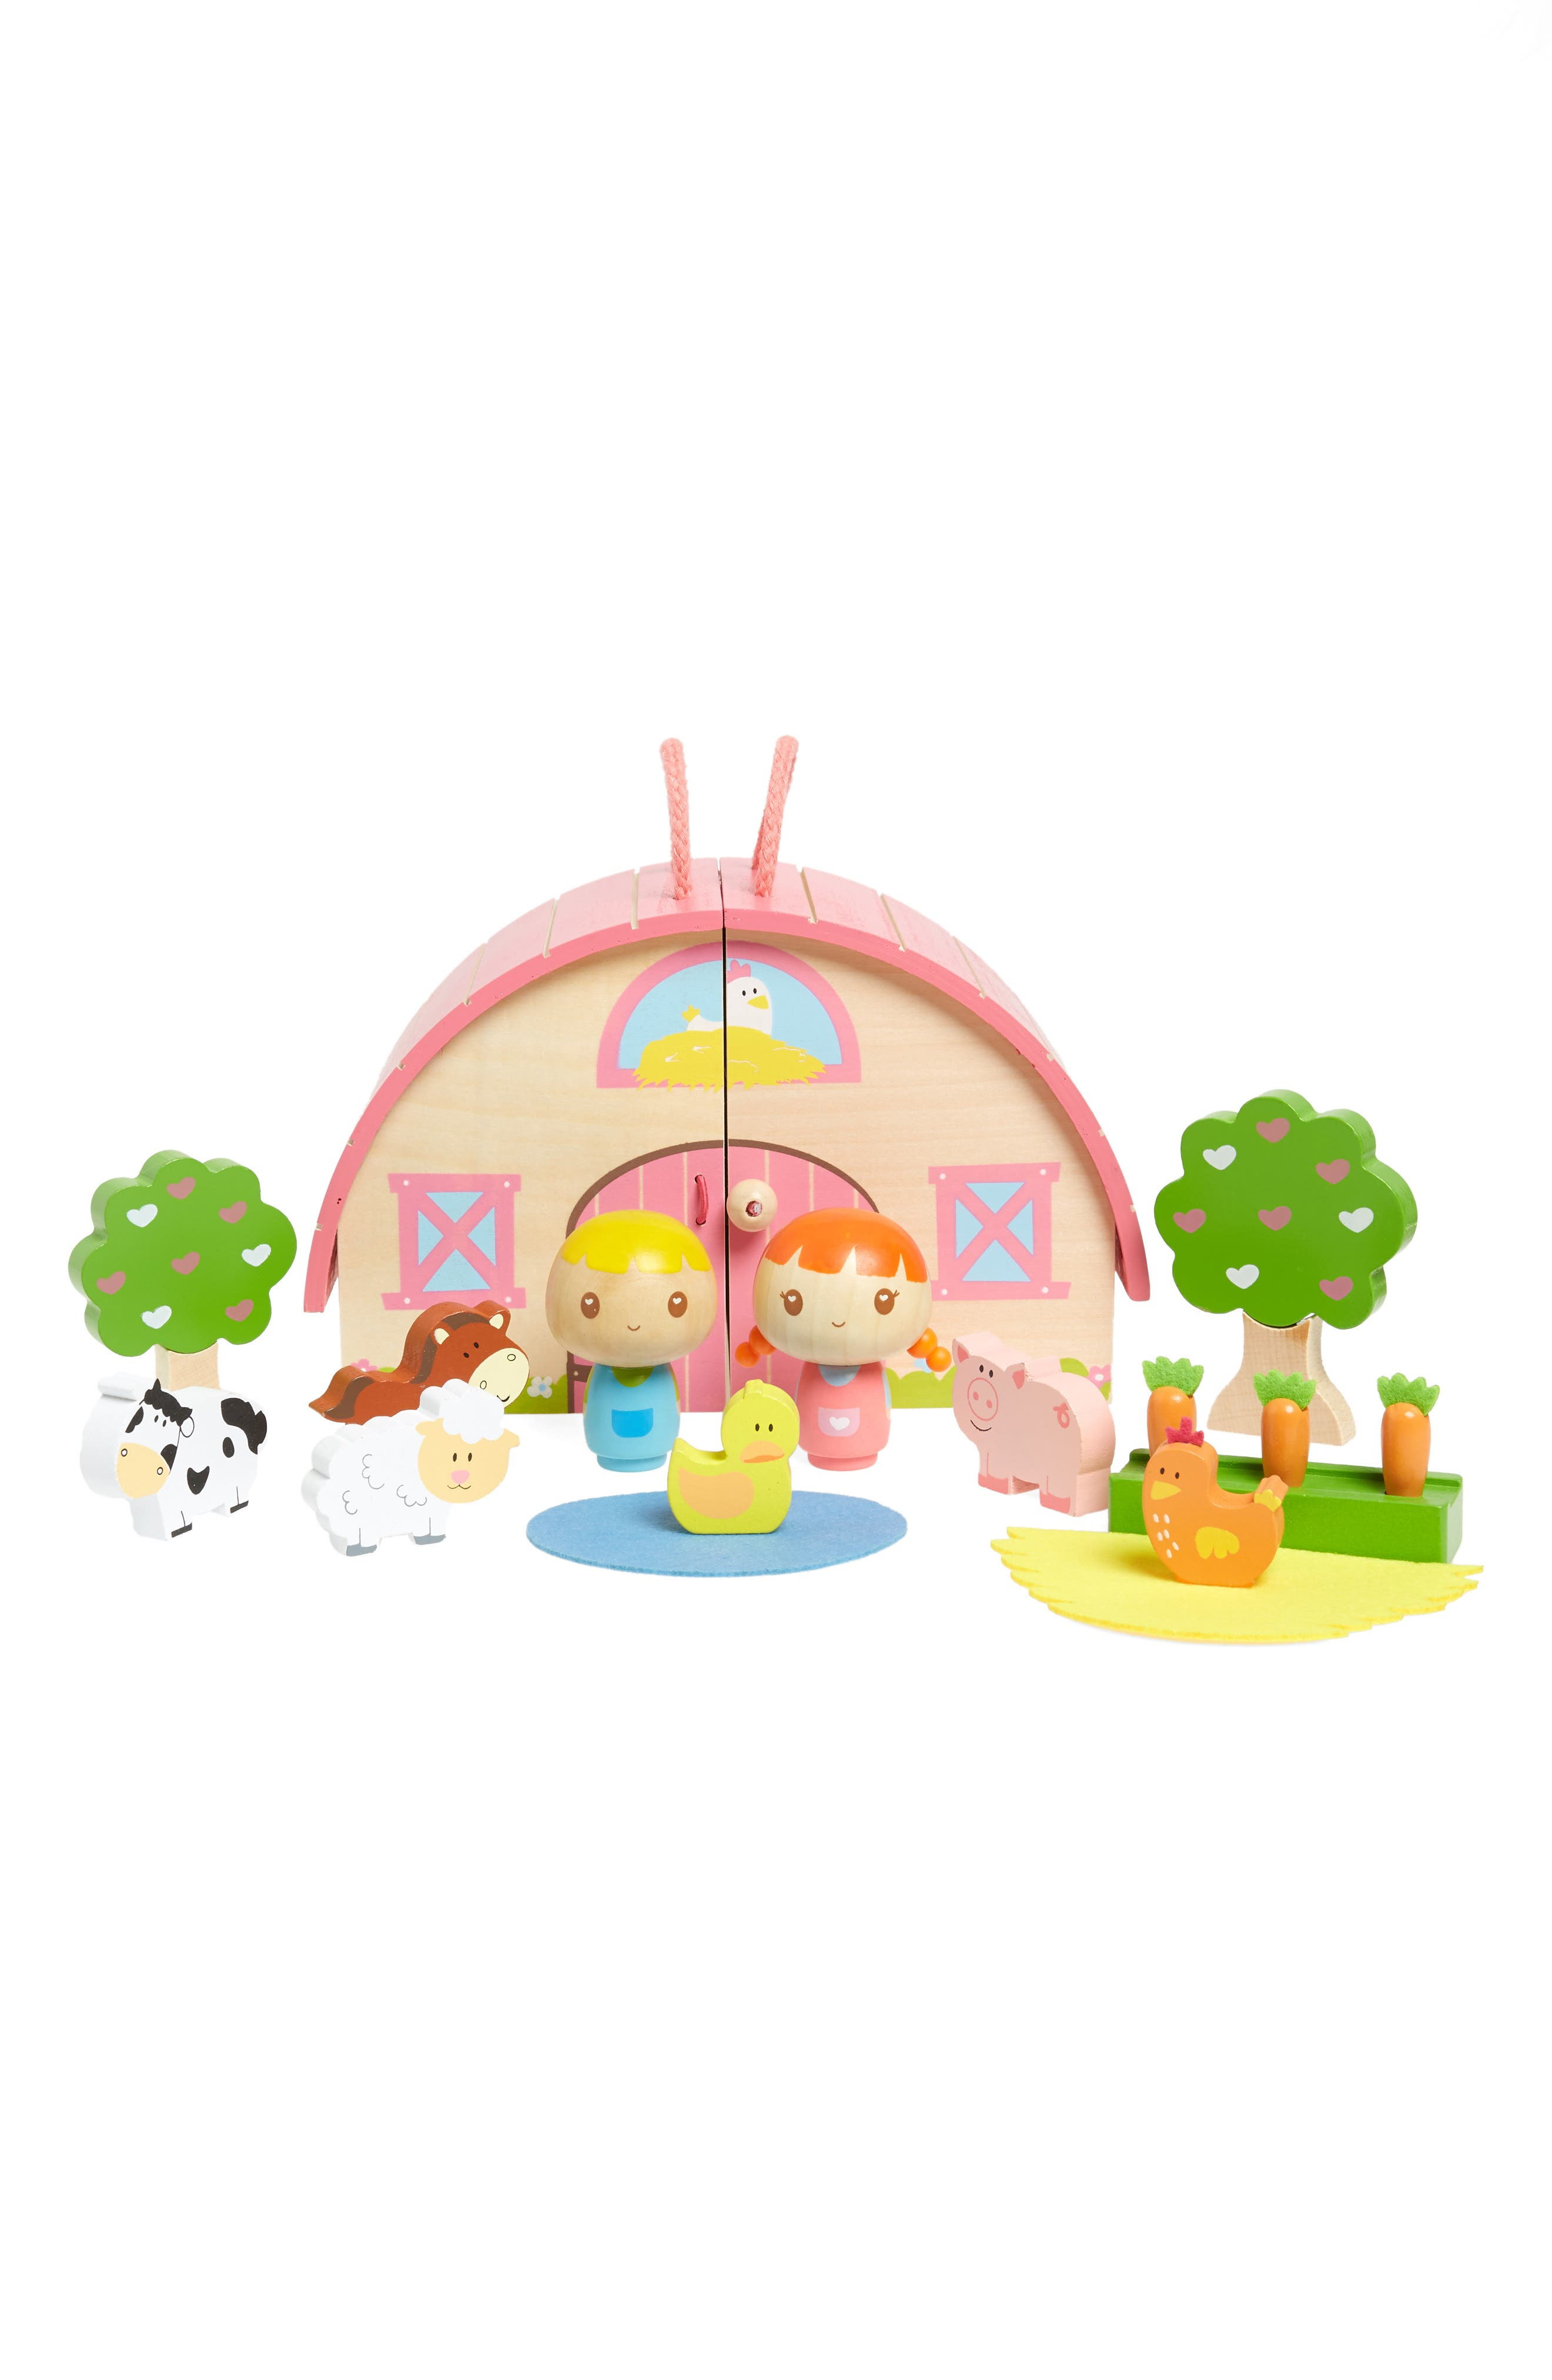 Sunrise Farm Wooden Play Set,                         Main,                         color, White And Pink